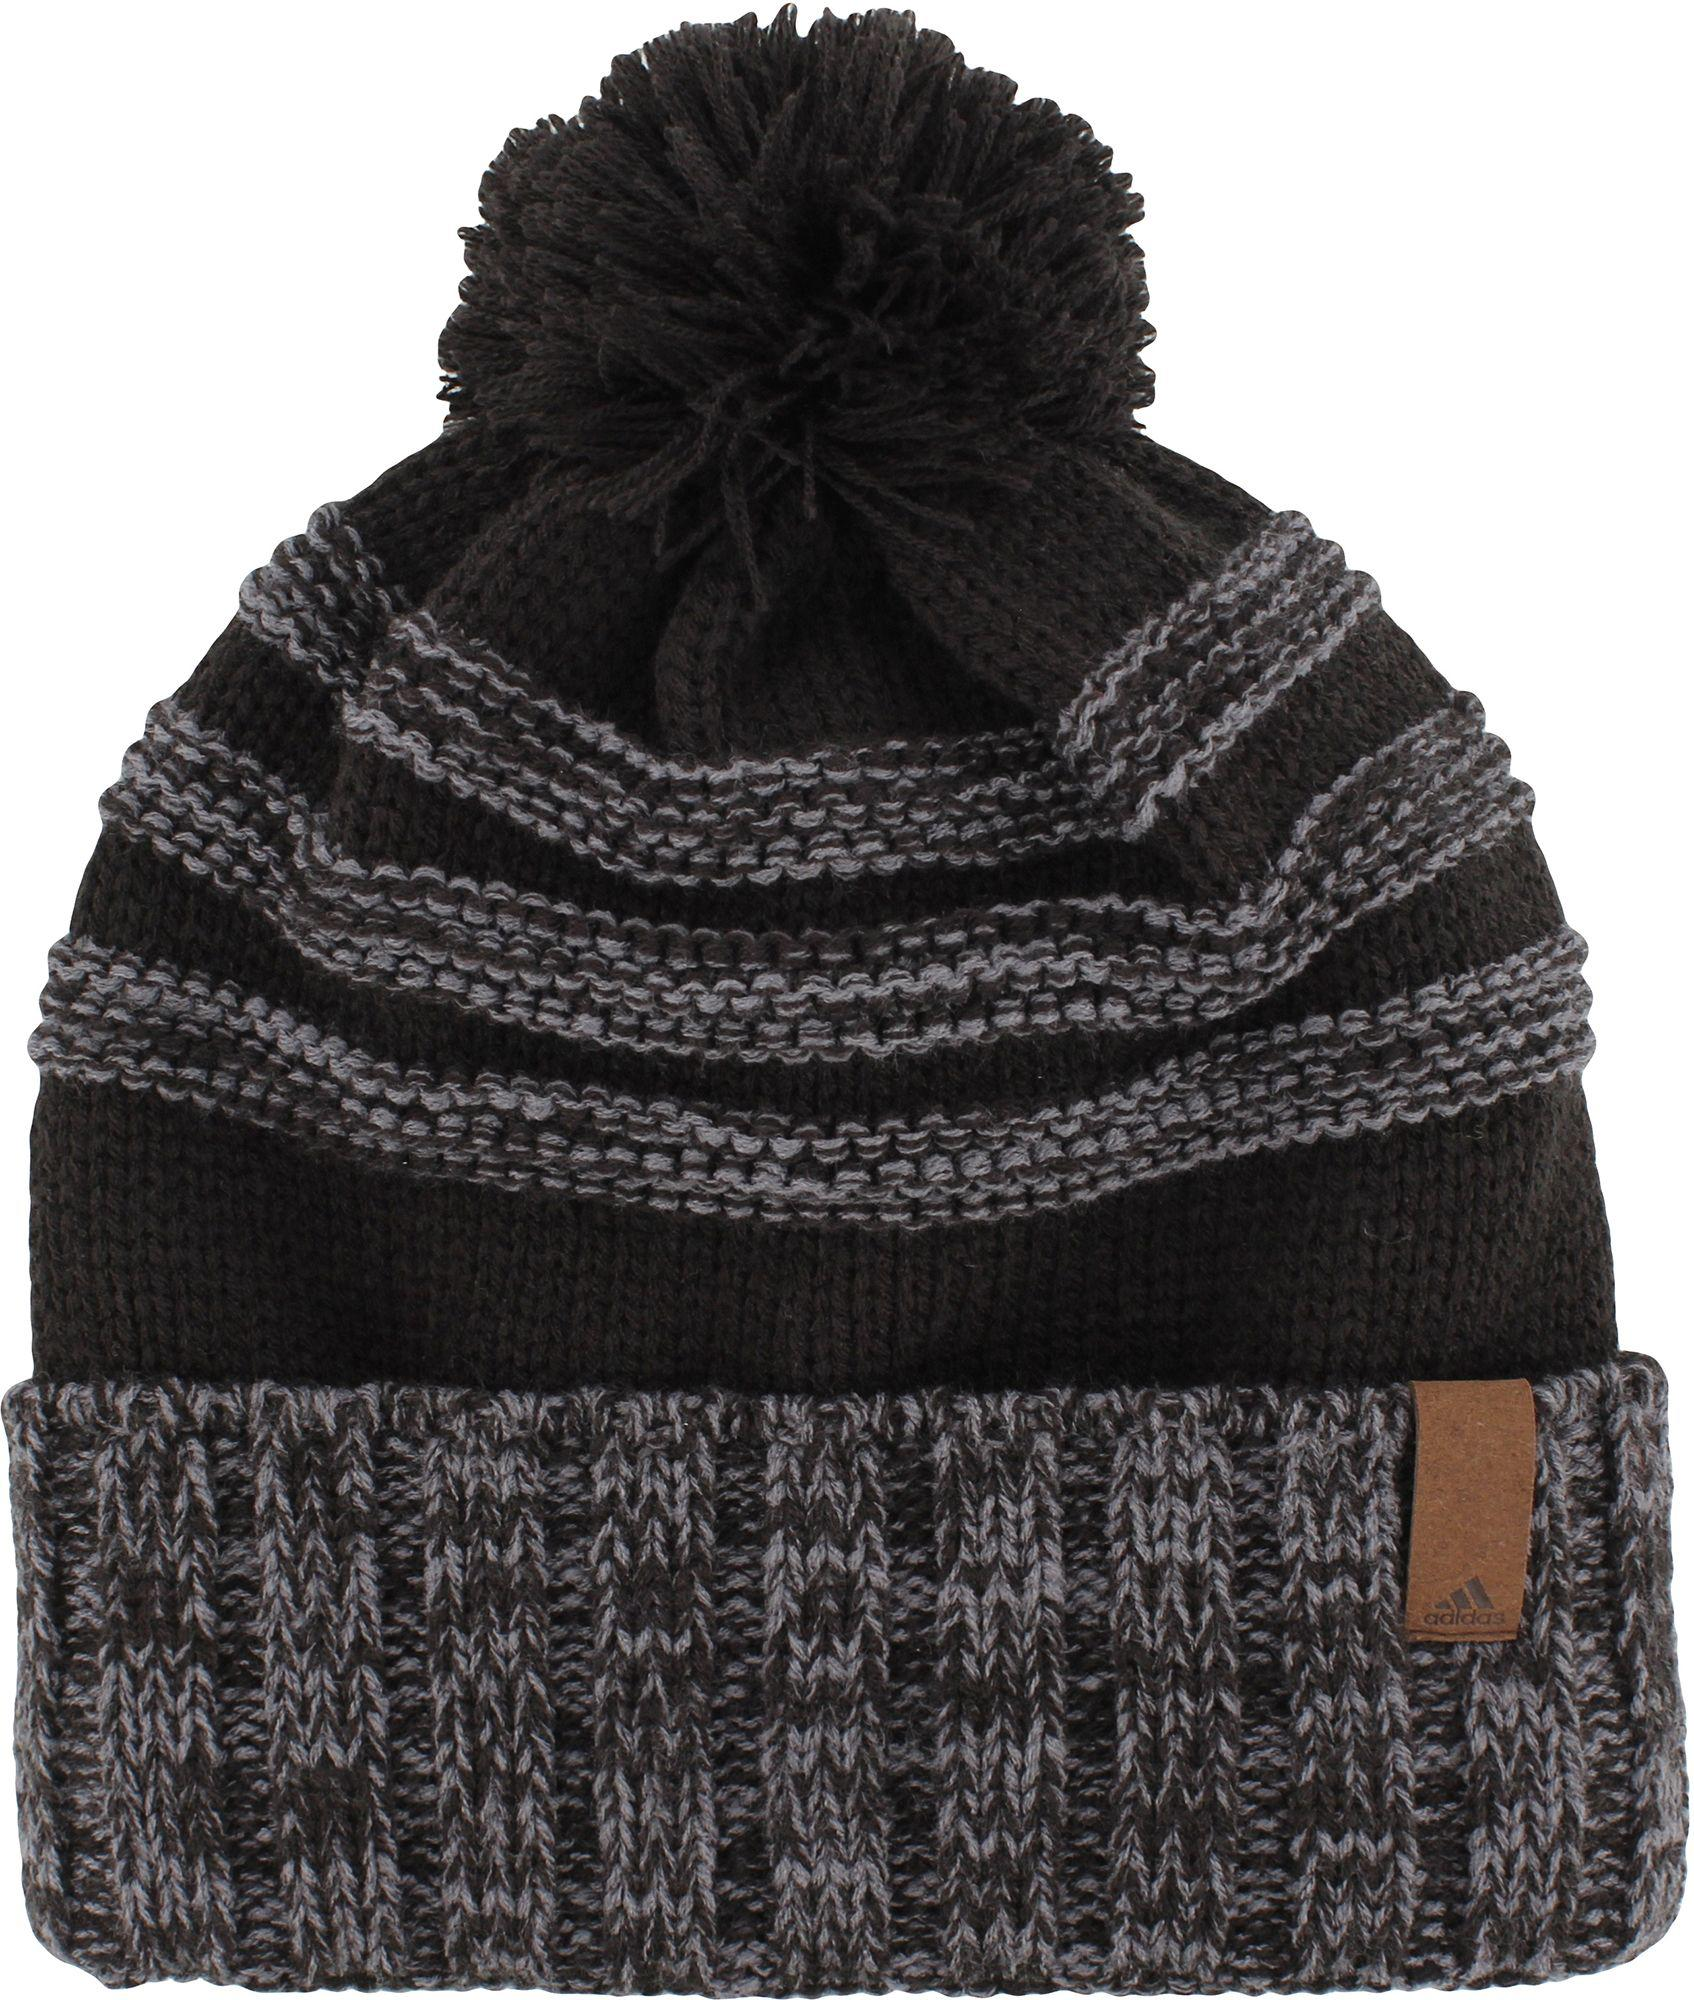 ADIDAS CLIMAHEAT CLASSIC POM POM WINTER THERMAL BEANIE HAT @ 50/% OFF RRP !!!!